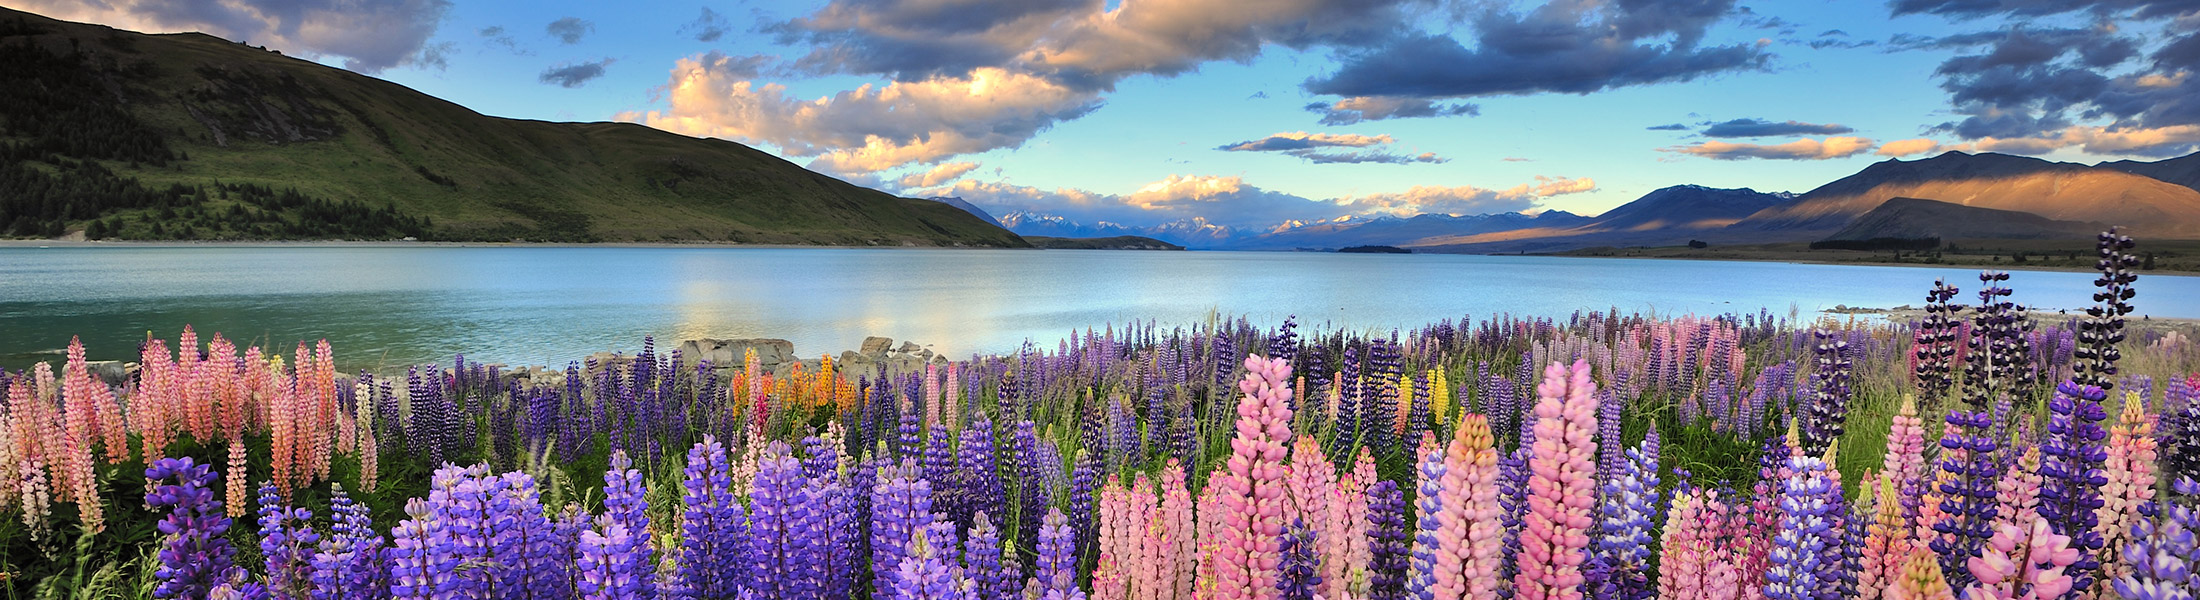 Wildflowers at Lake Taupo in New Zealand